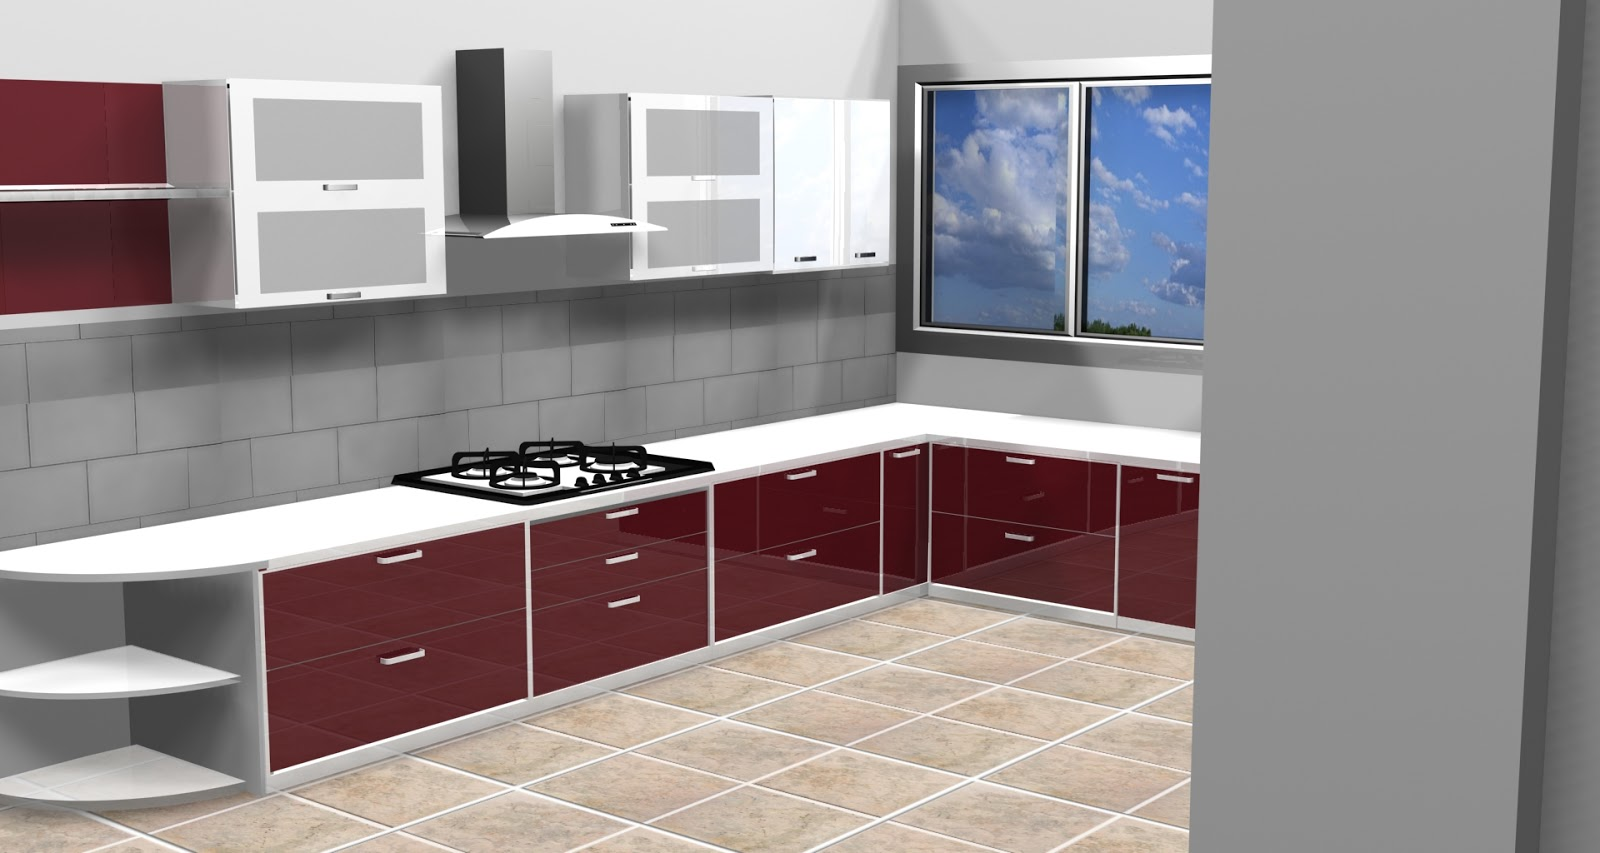 Anuj khanna 9873374916 vasant kunj kitchen layout in 3ds max for Kitchen furniture 3ds max free